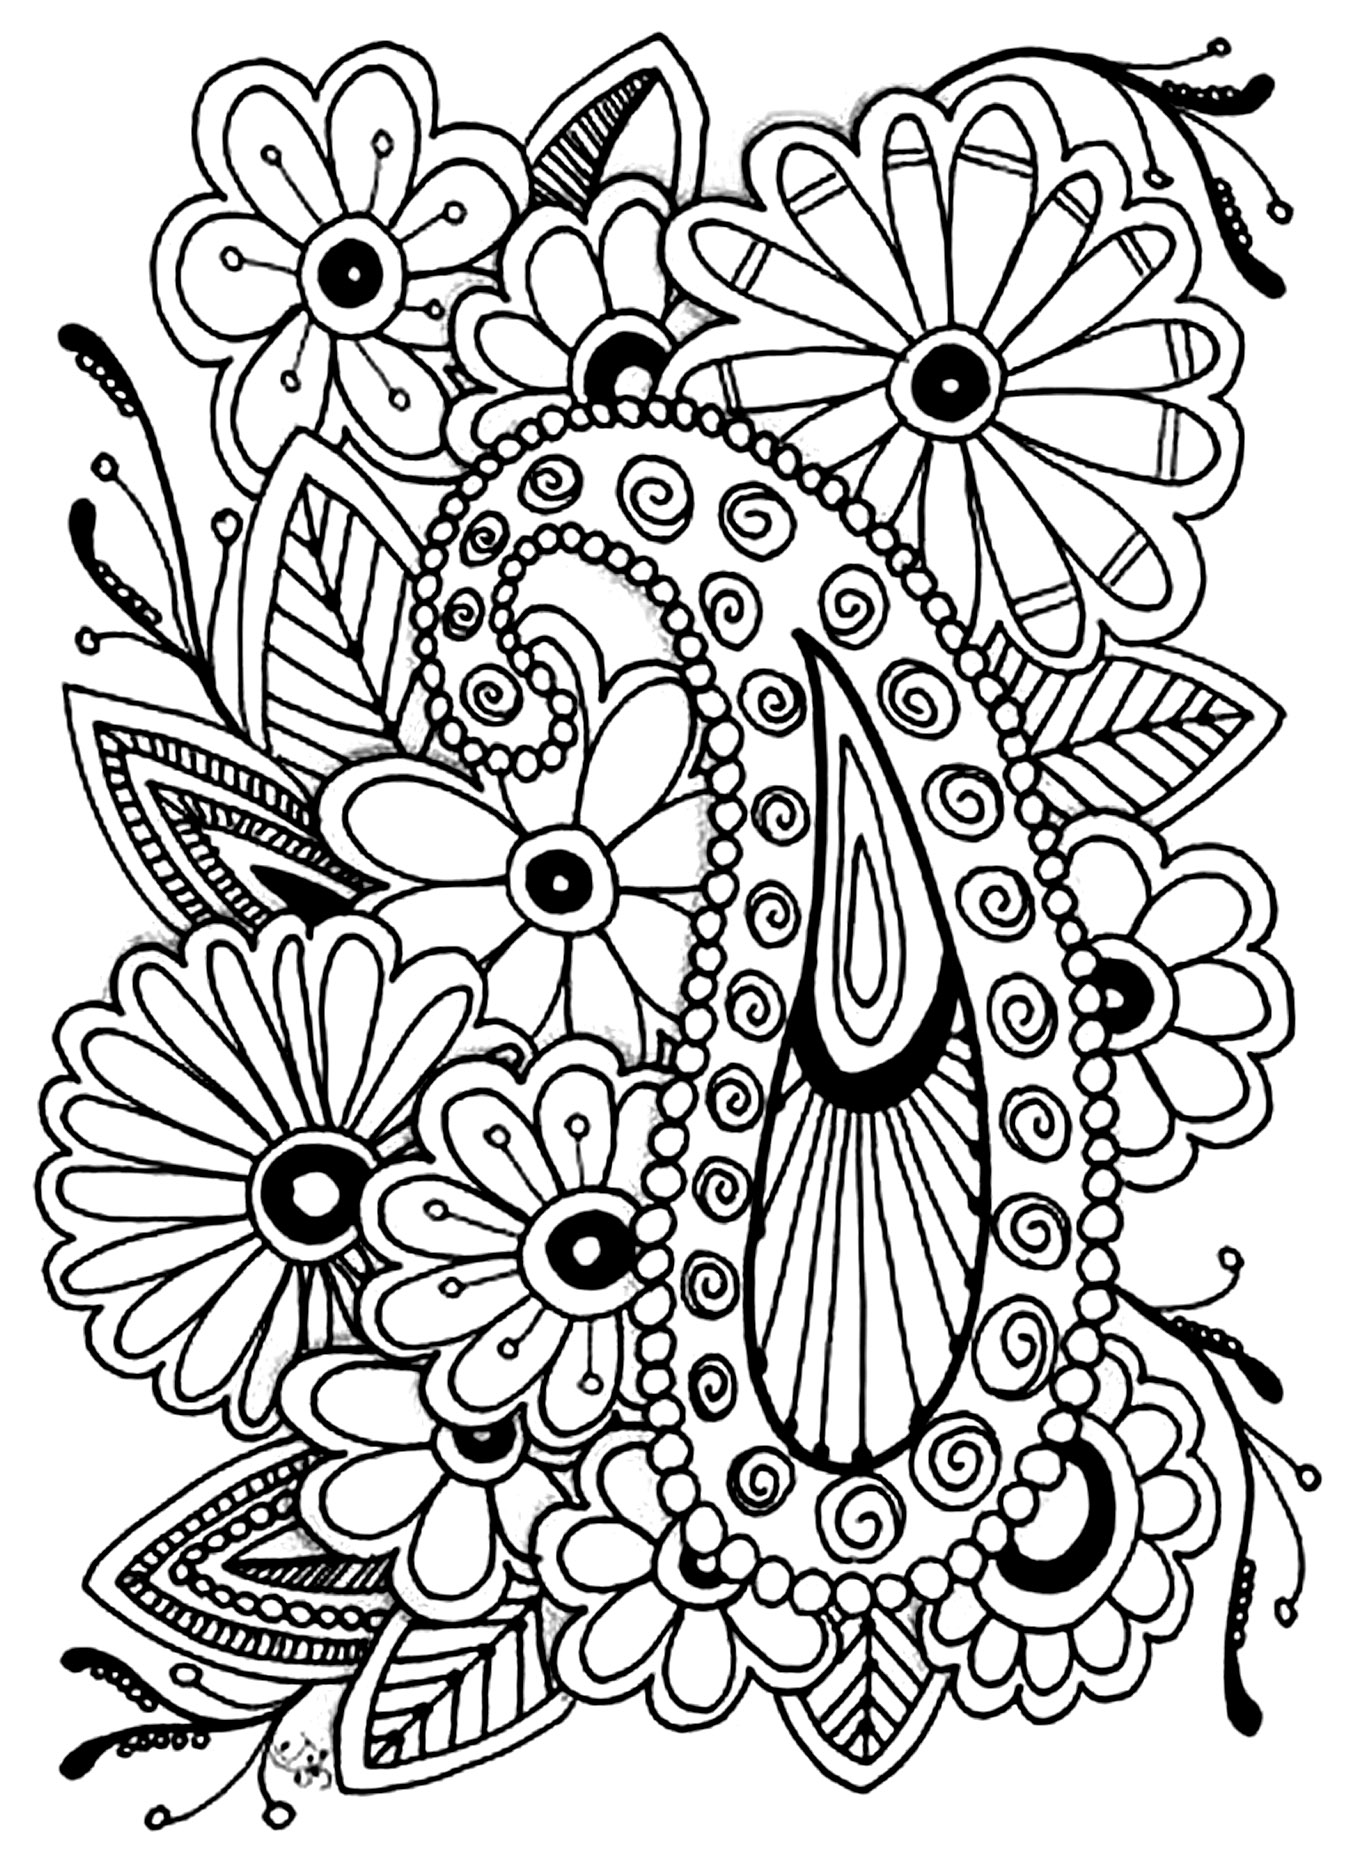 adult coloring pages flowers adult coloring page petunias the graphics fairy pages coloring adult flowers